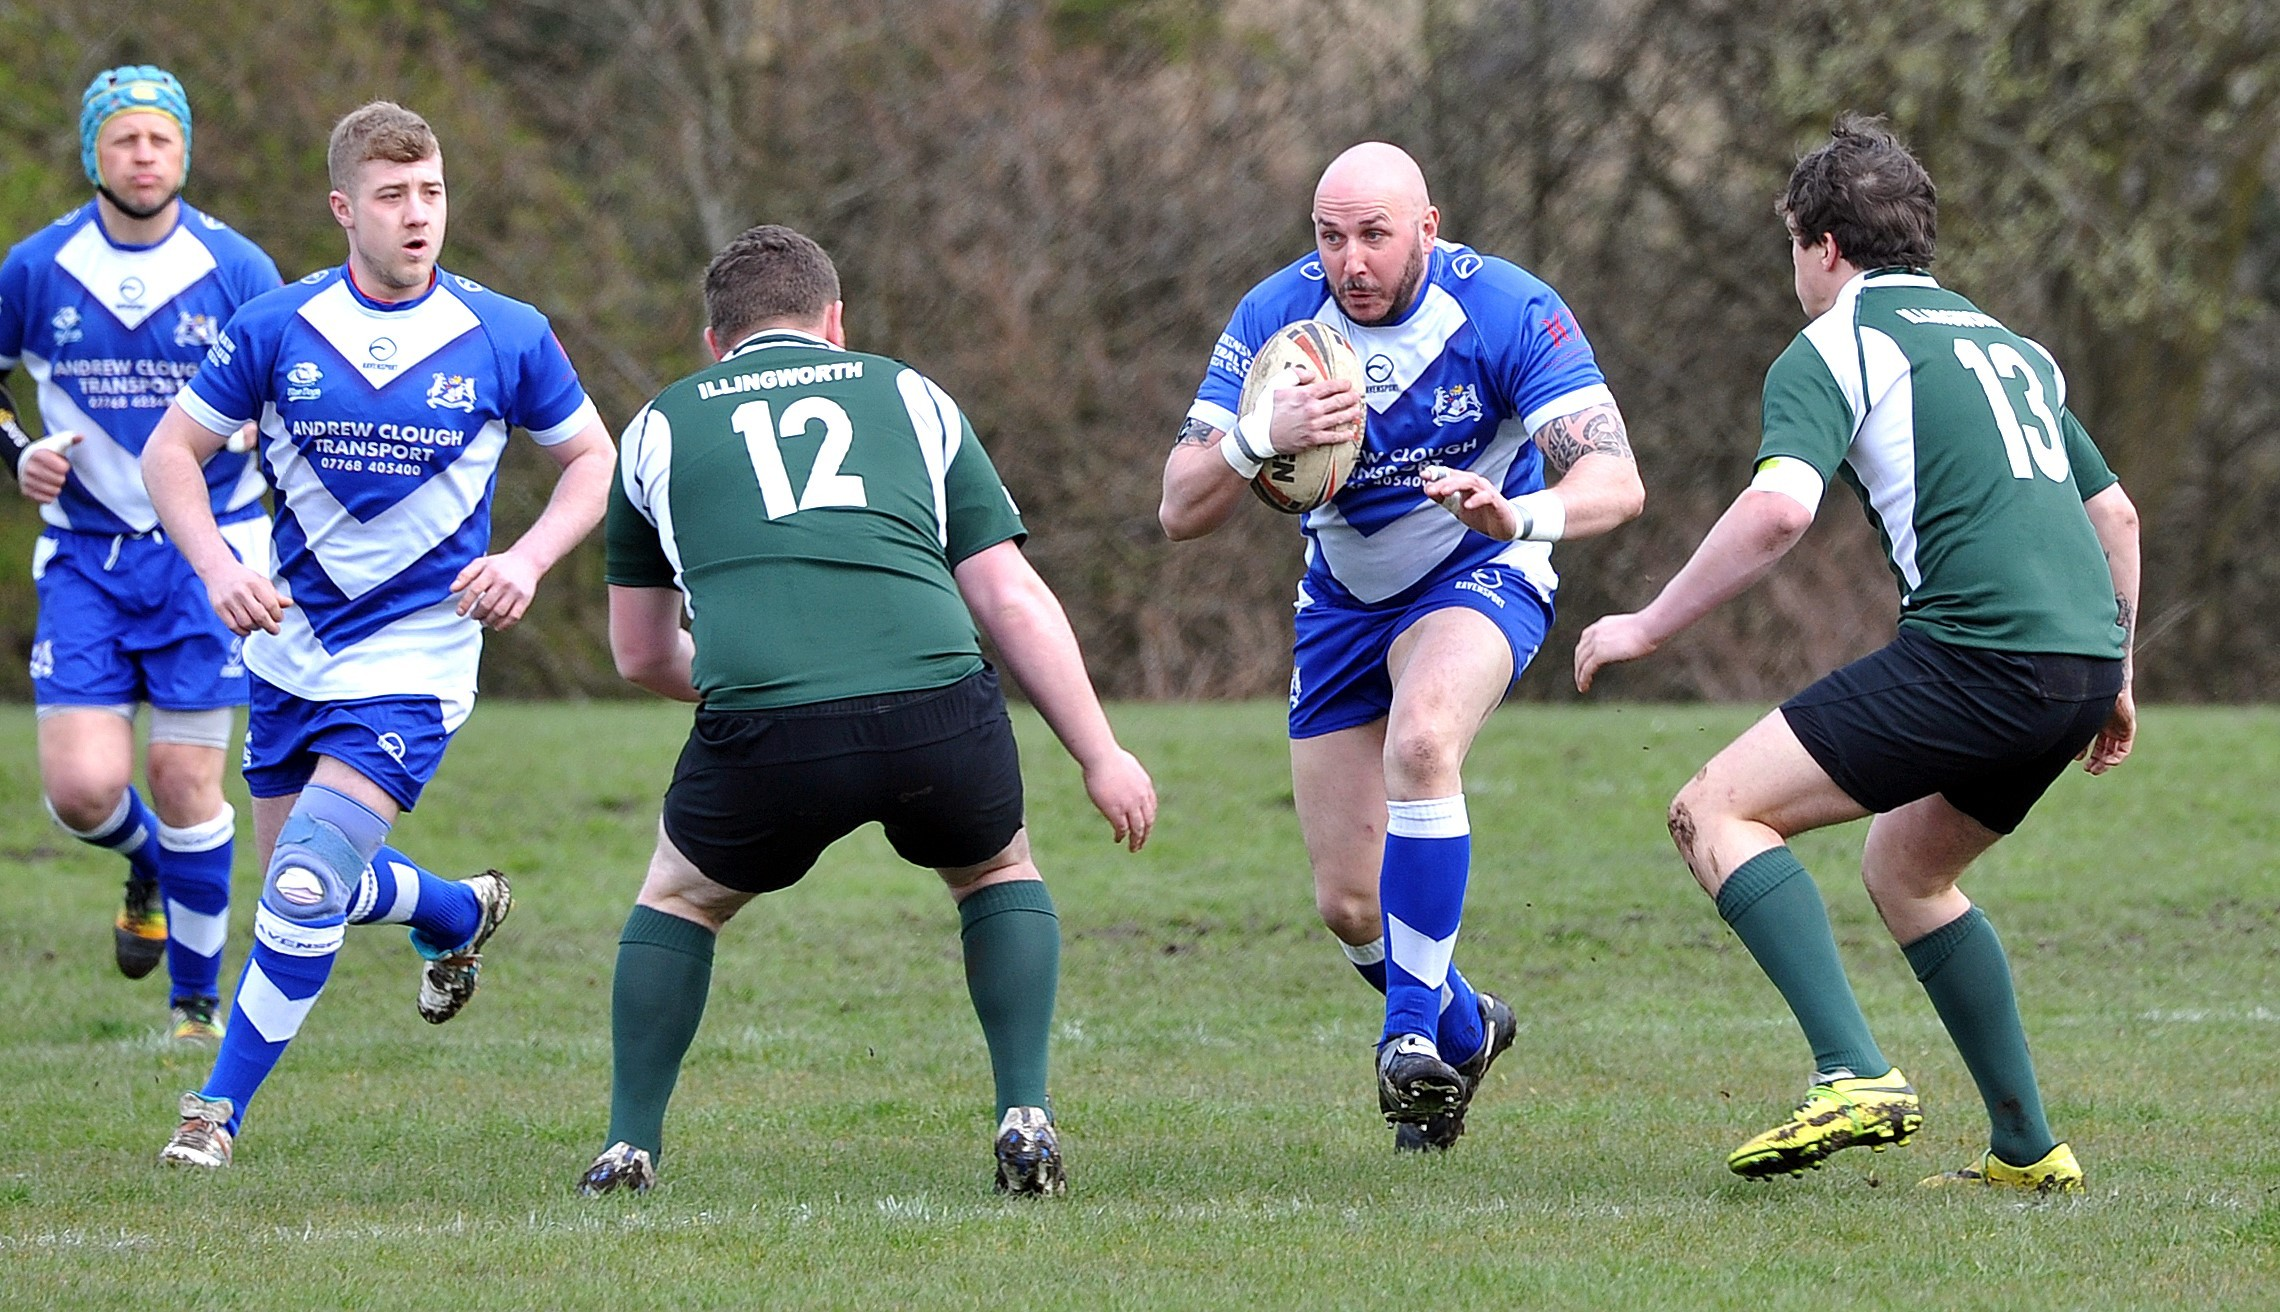 Adam Lazenby starred for Birkenshaw in their win at Wakefield City